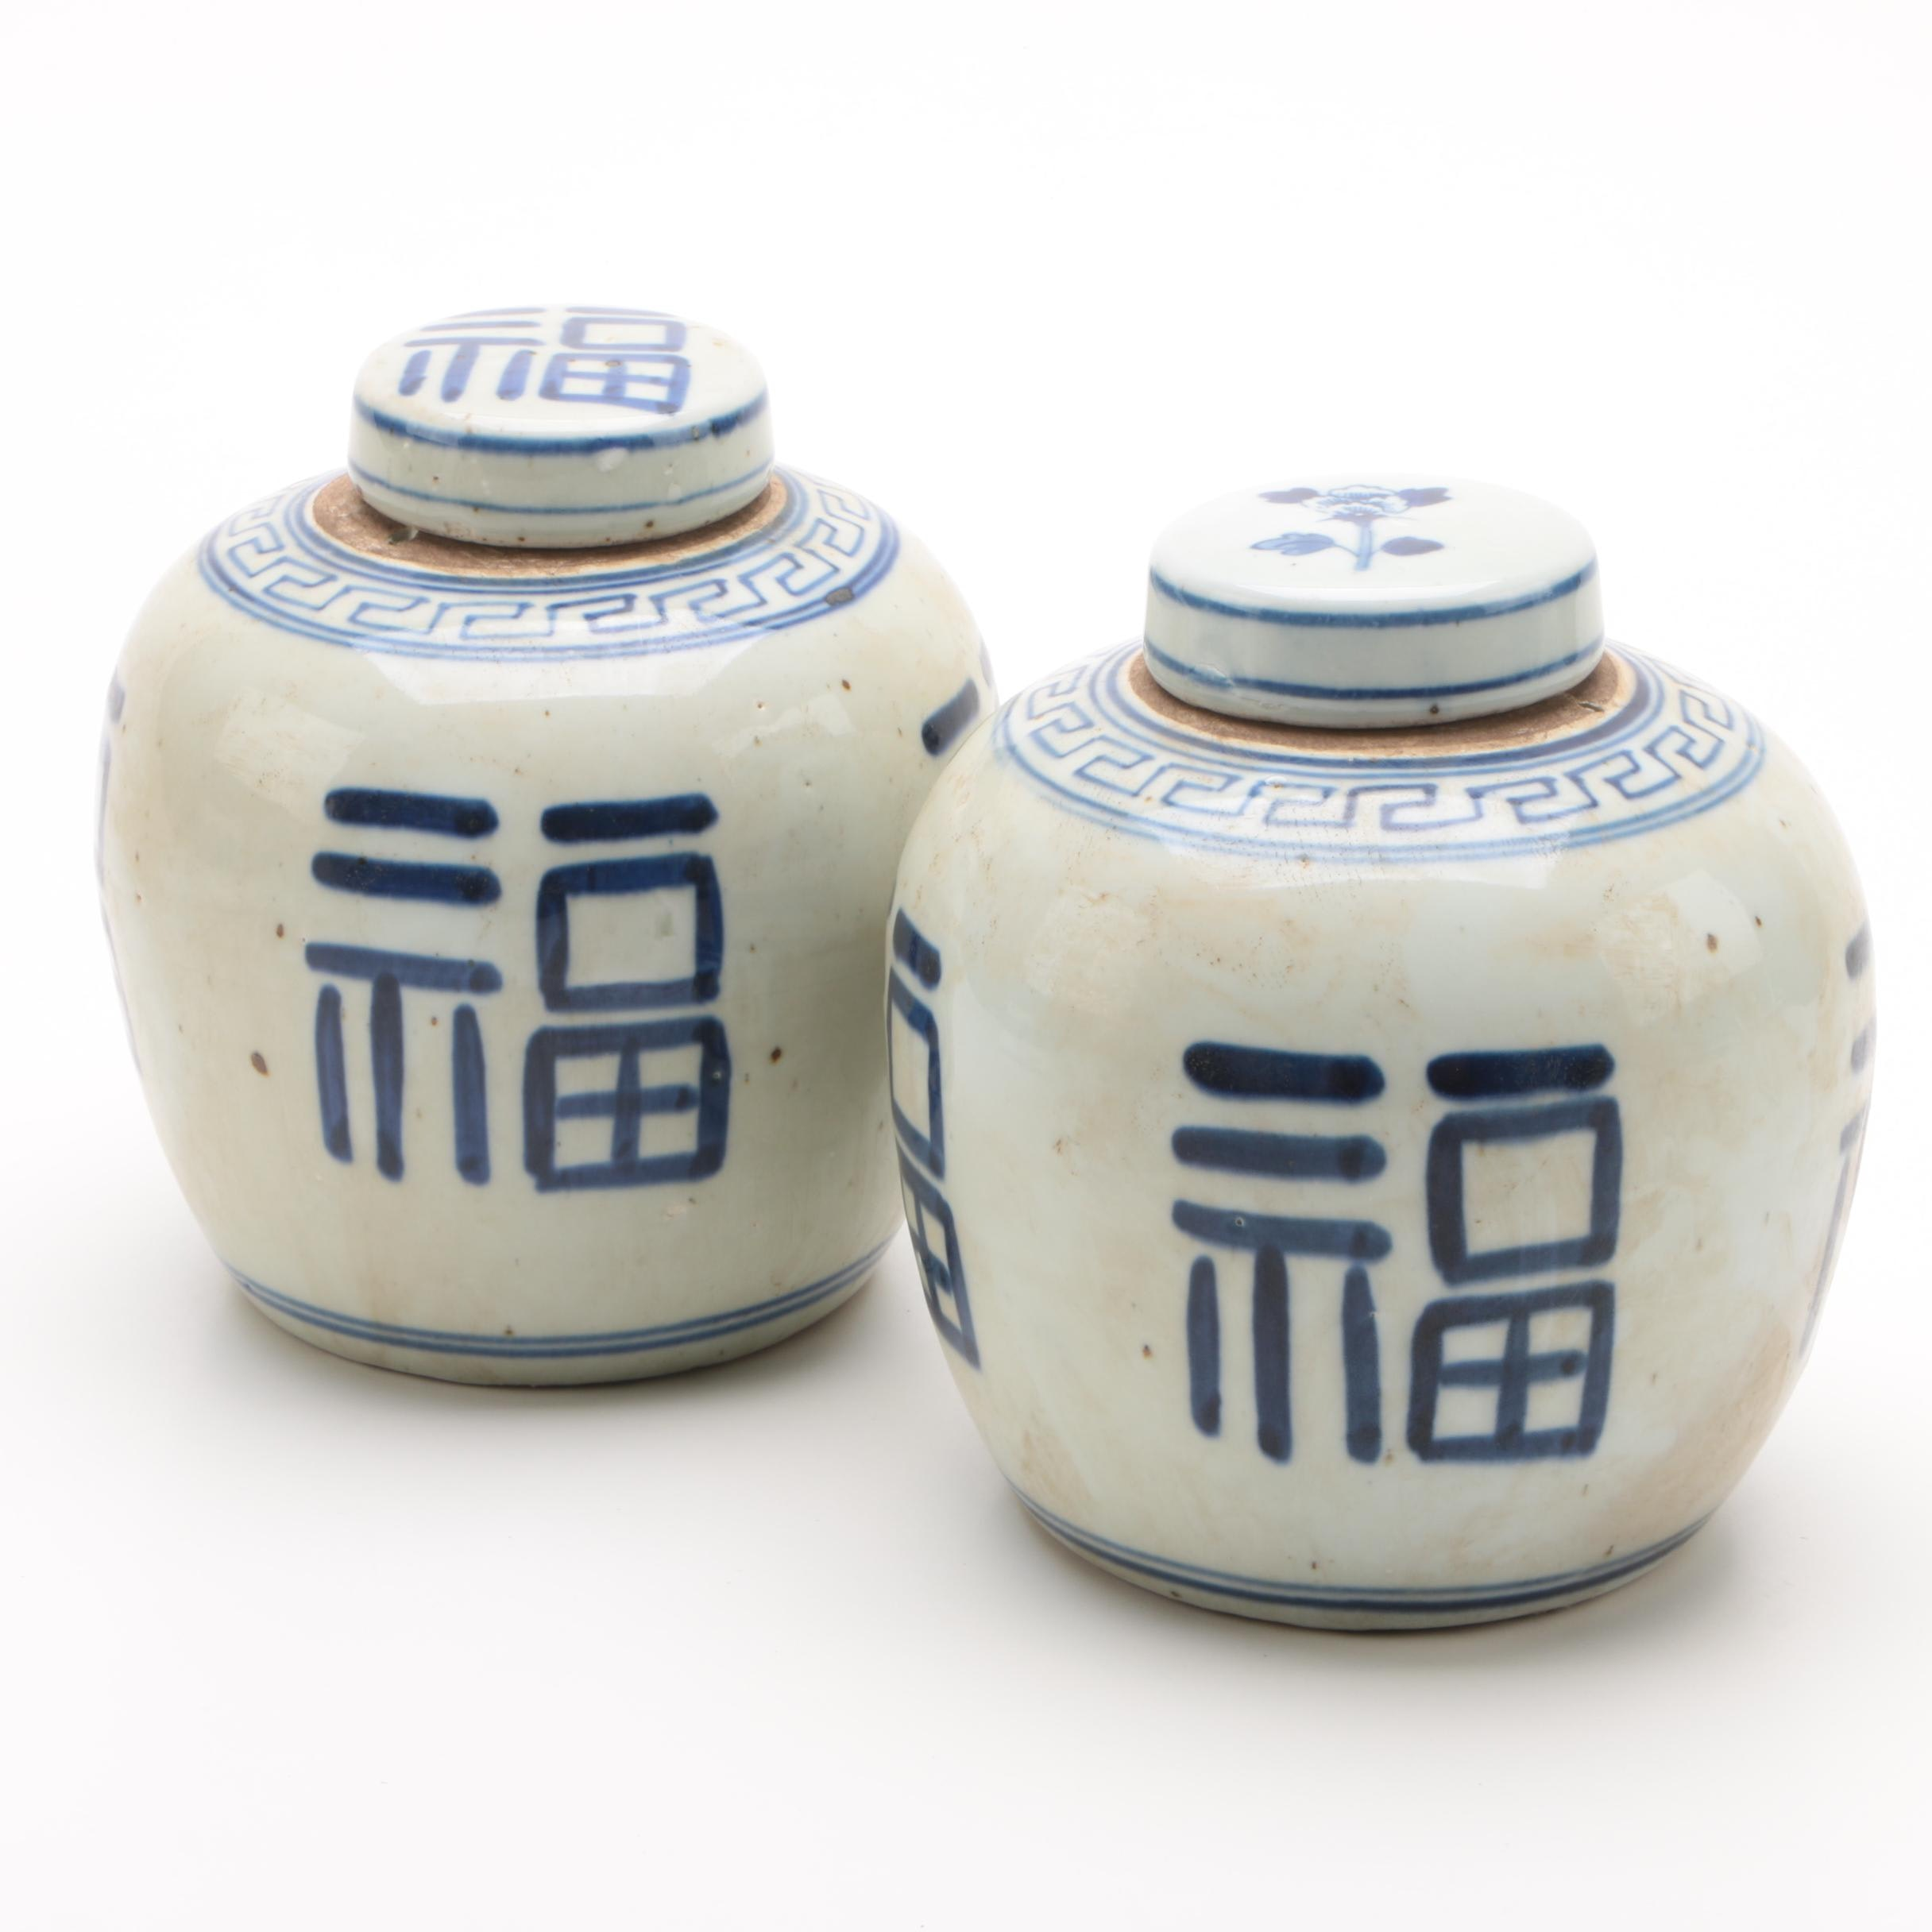 Chinese Hand-Painted Blue and White Ceramic Ginger Jars